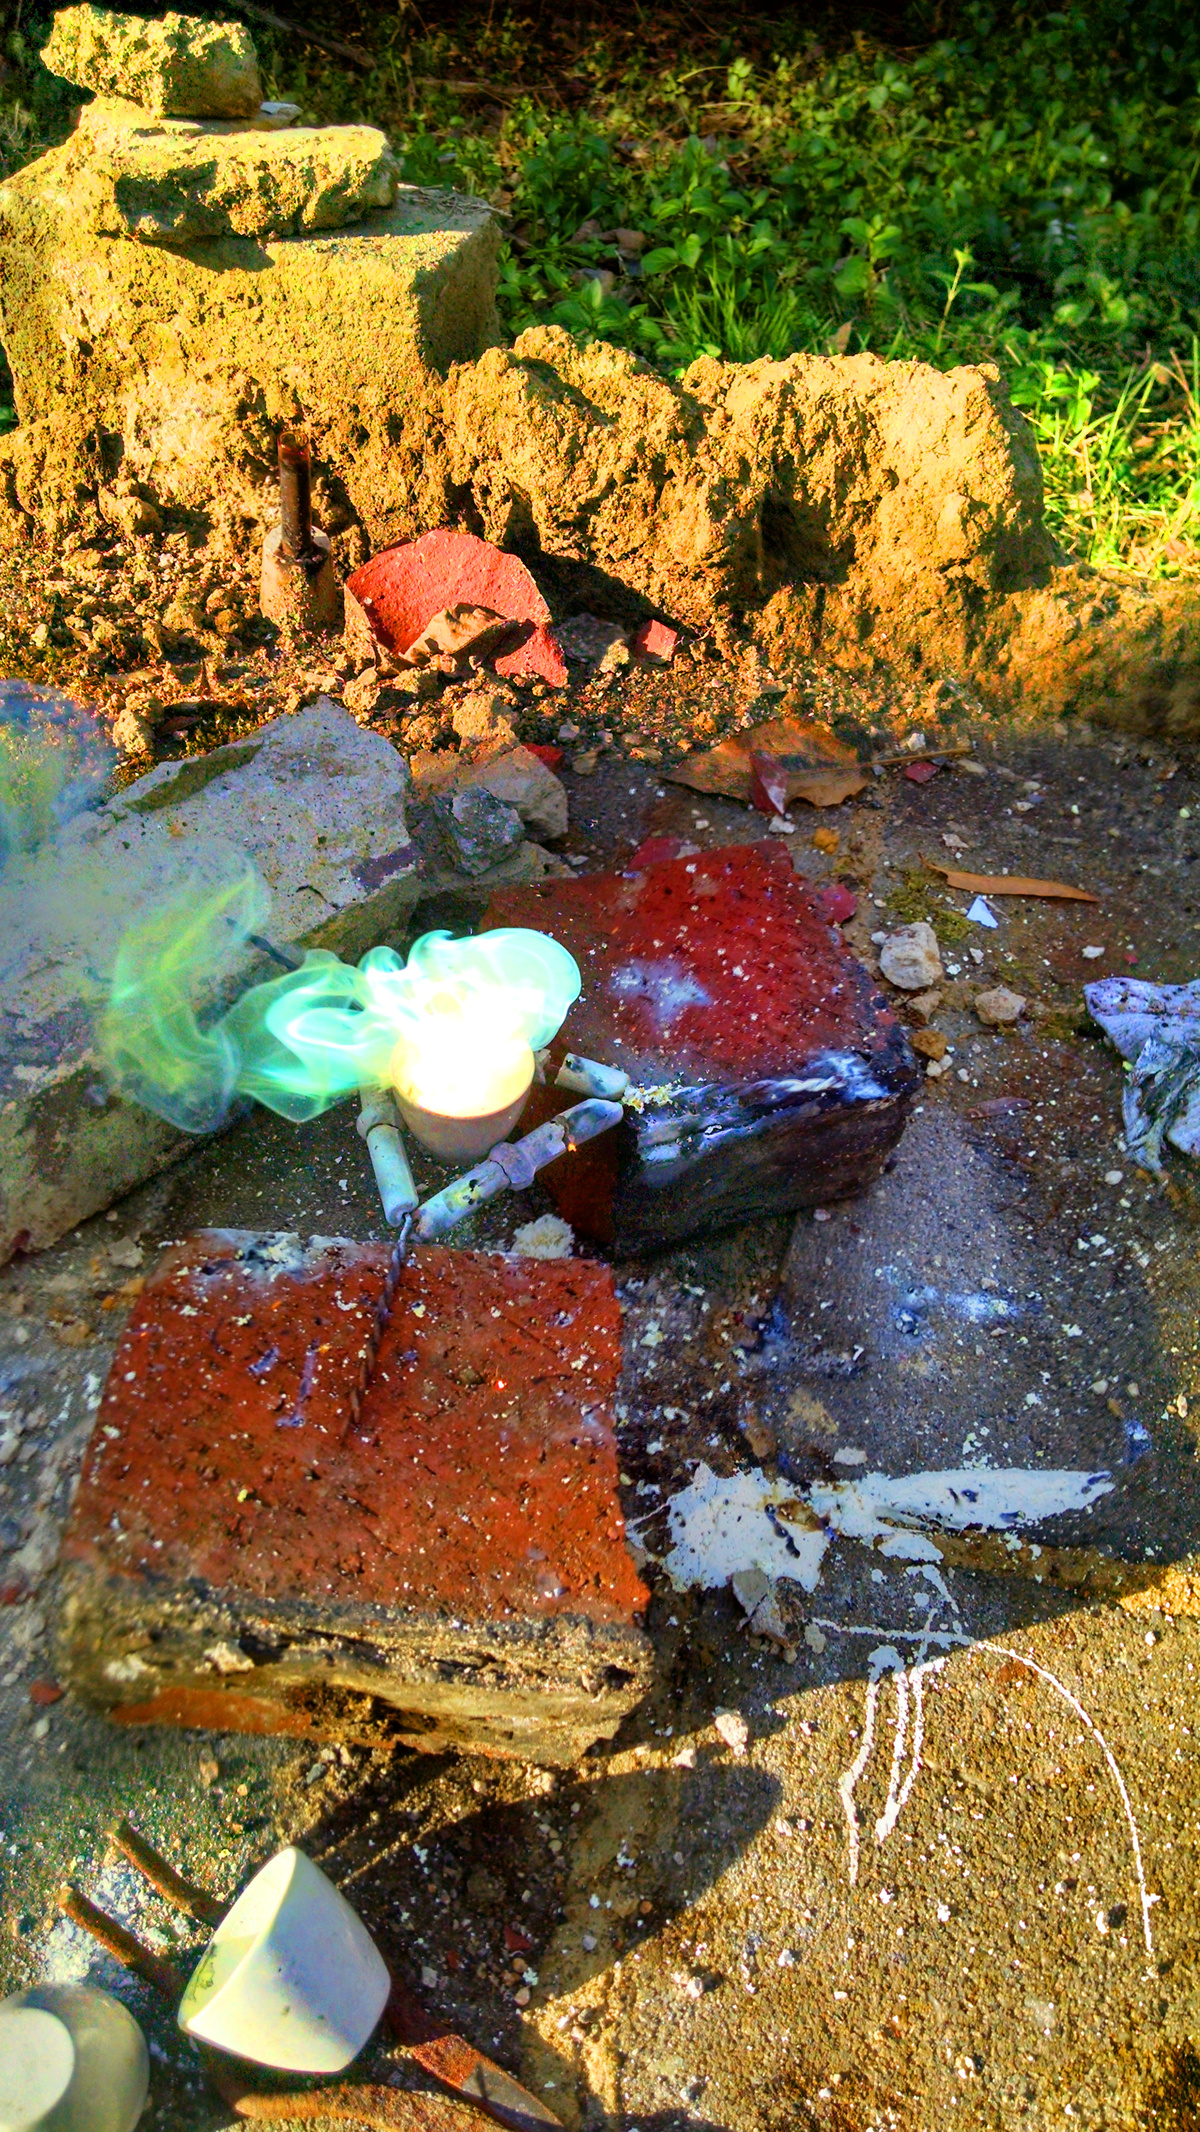 Zinc and sulfur ignite upon forming zinc sulfide, forming a blue-green flame. This reaction has been used as a rocket fuel.[1]